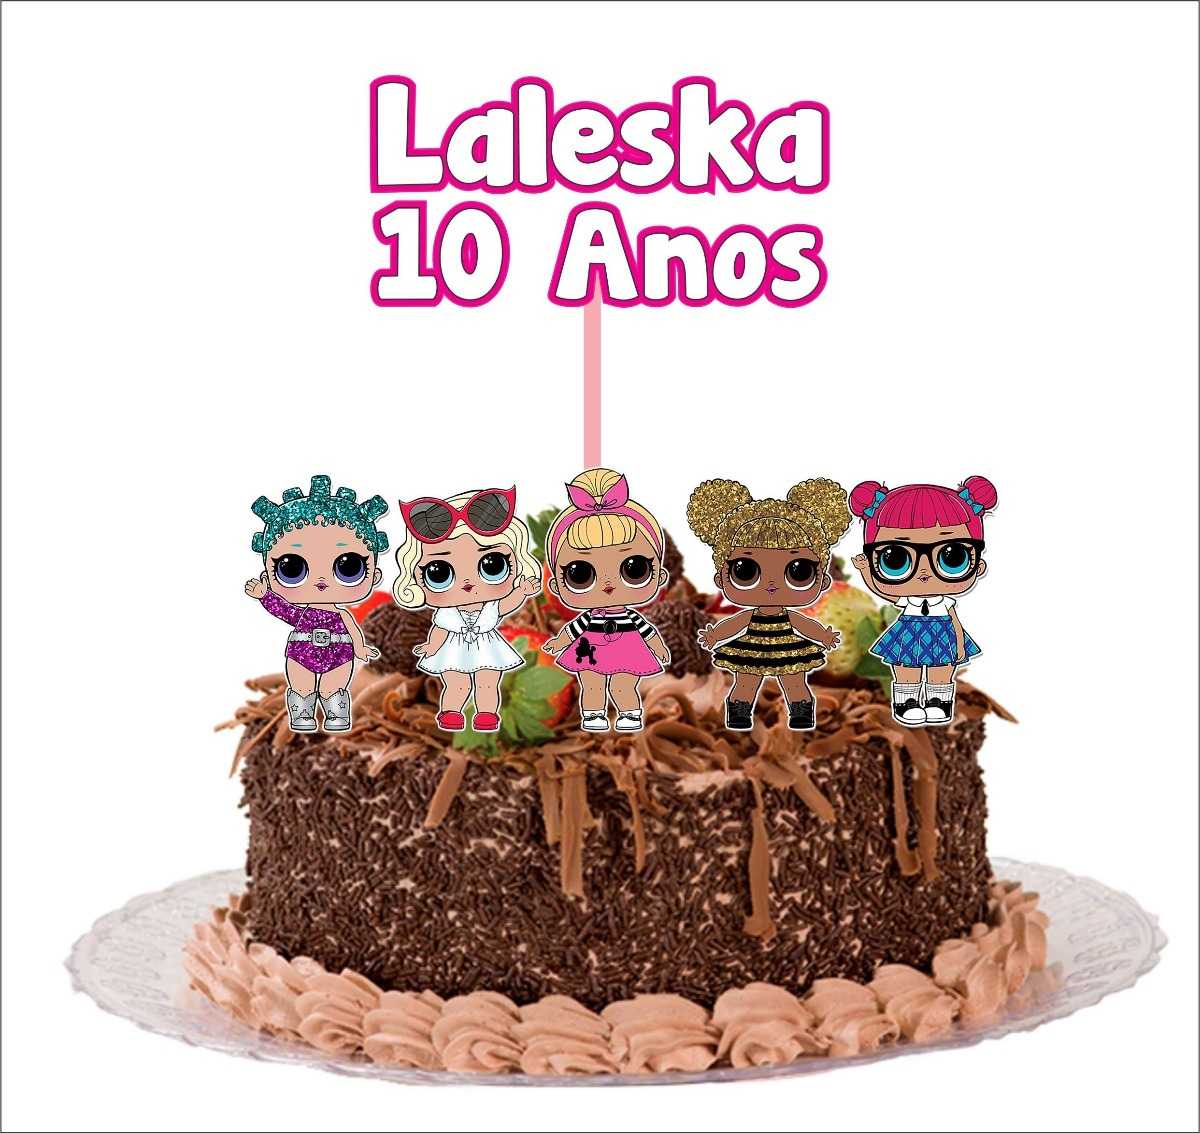 Topo De Bolo Cake Topper Decoraç u00e3o Festa Lol Surprise R$ 24,88 em Mercado Livre -> Decoracao De Bolo Da Lol